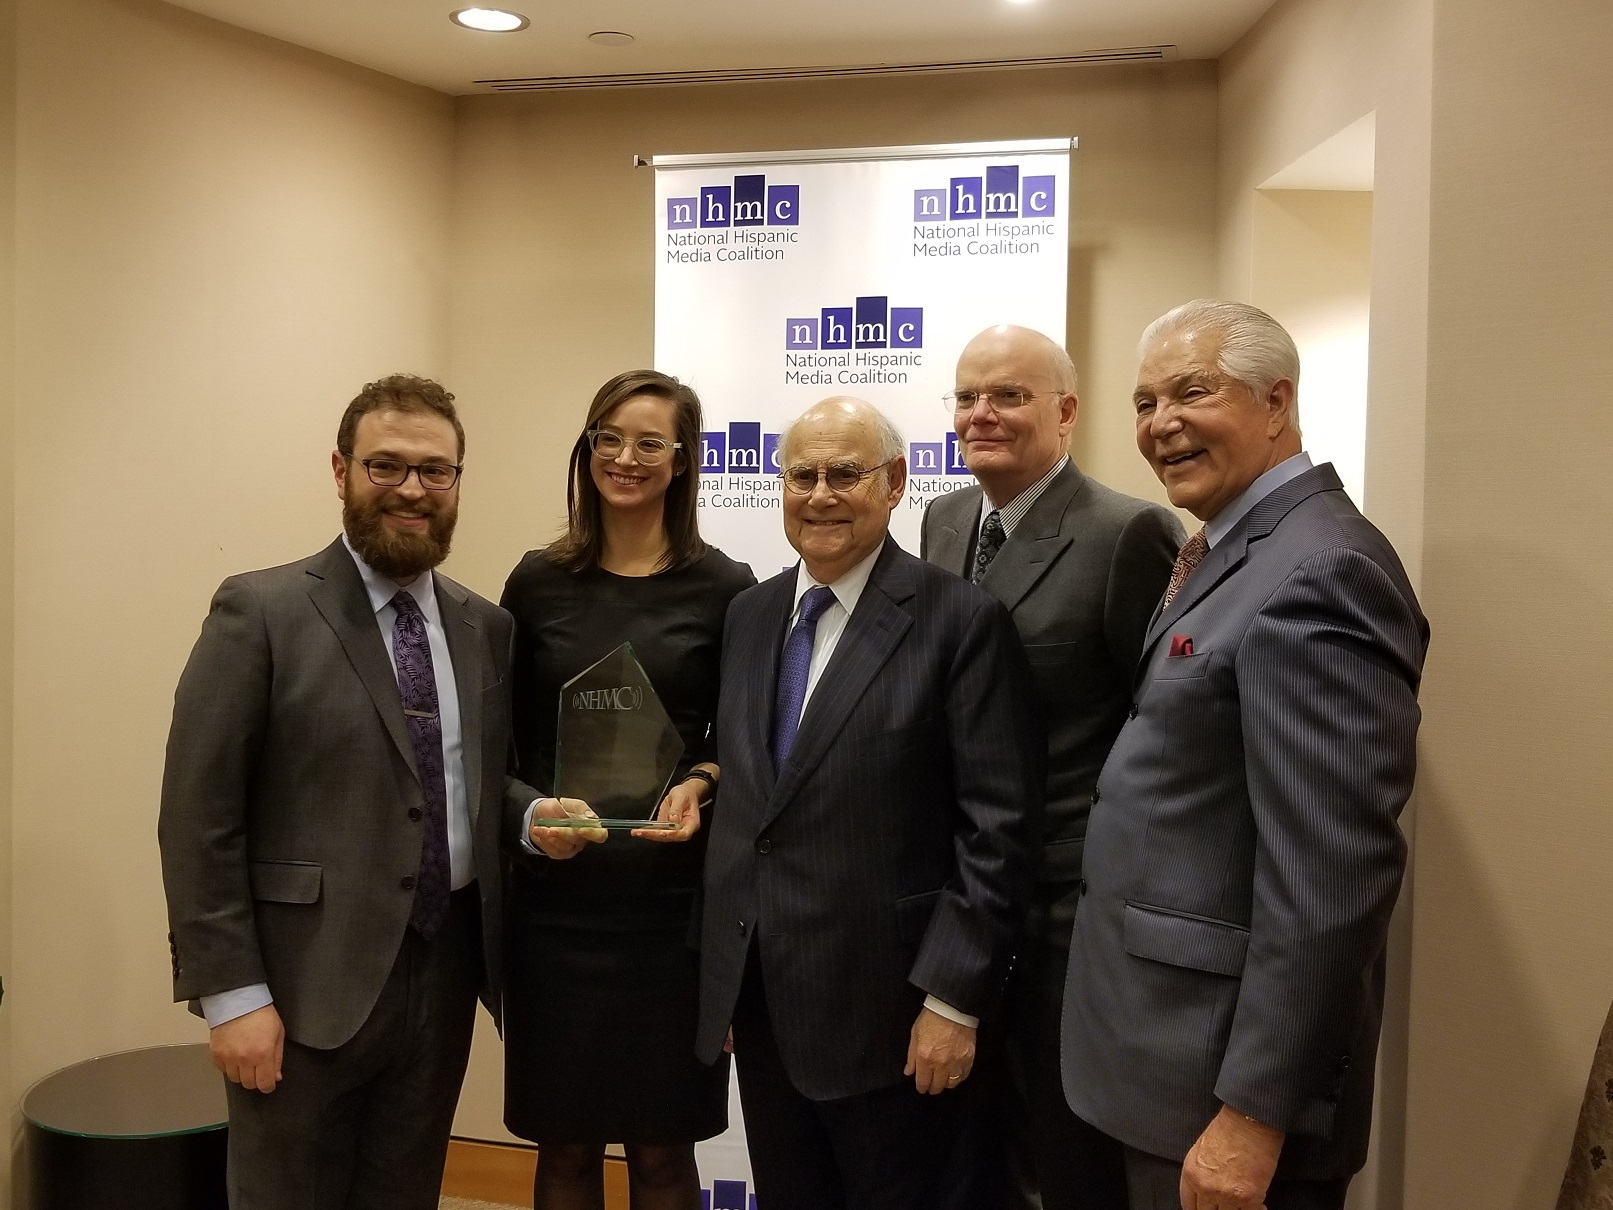 Spiegel Attorneys Honored by NHMC